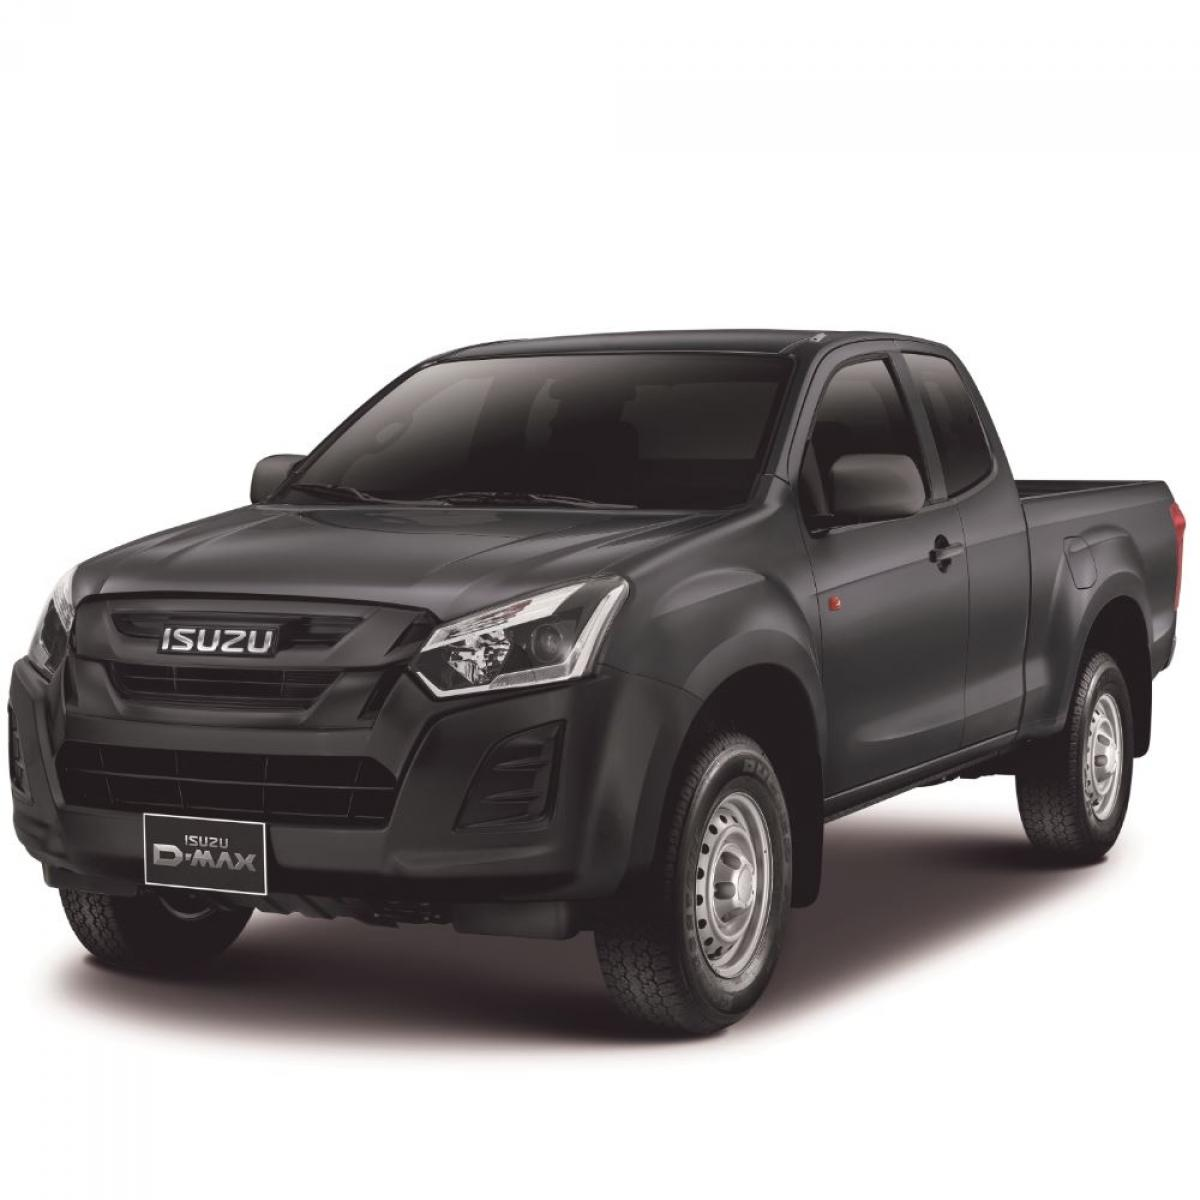 Isuzu D-Max Space Satellite